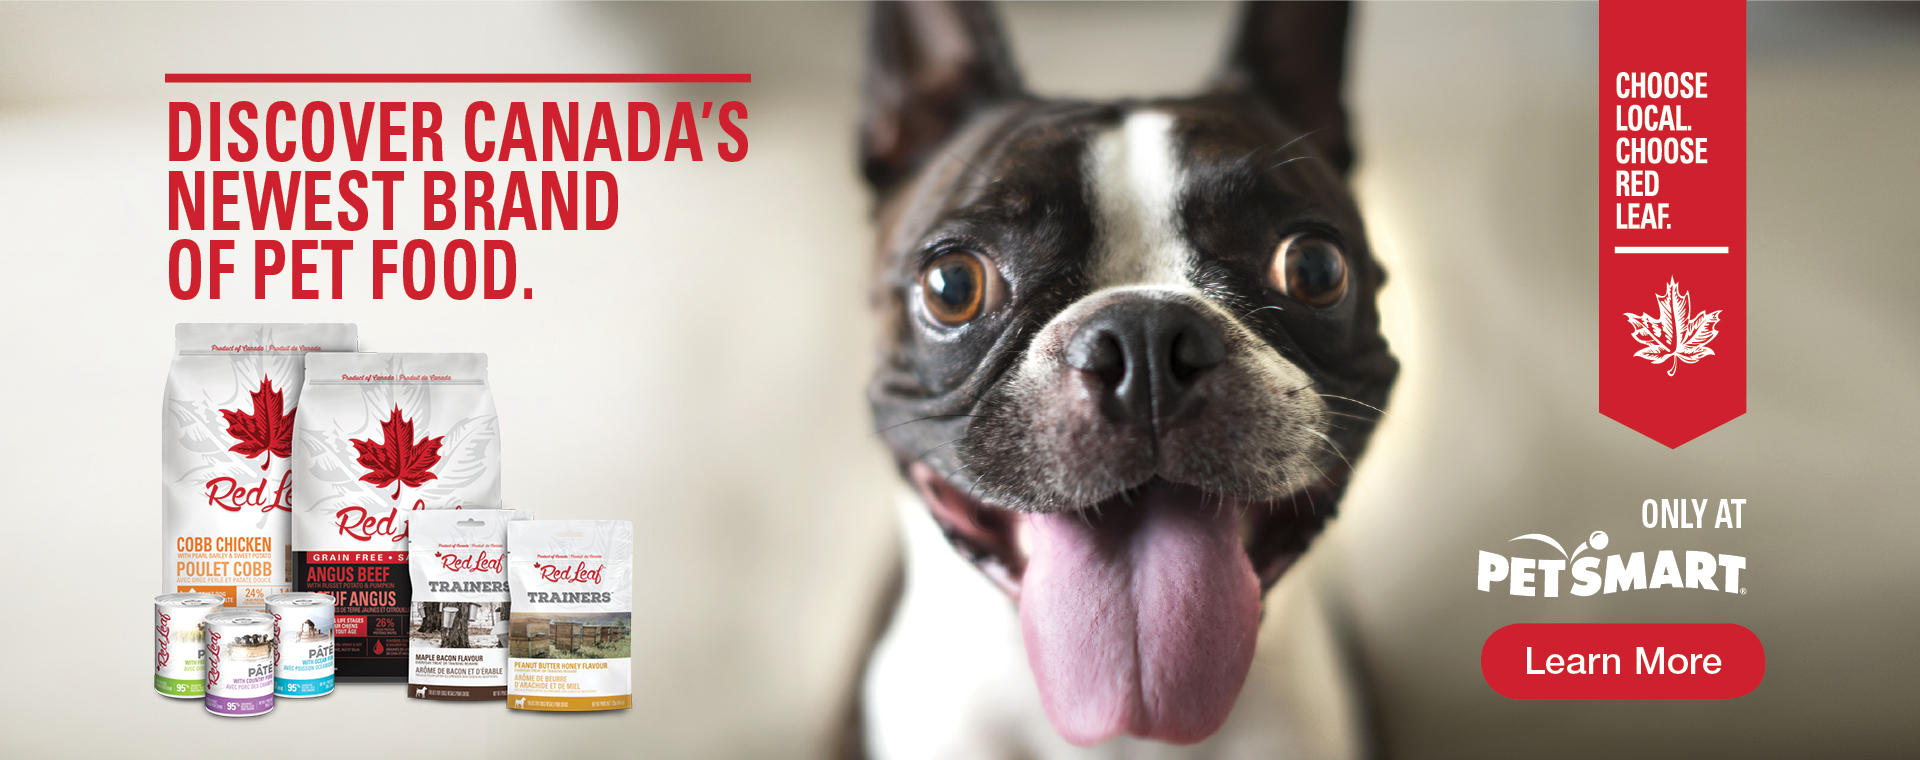 RED LEAF PET FOOD - DISCOVER CANADA'S NEWEST BRAND OF PET FOOD